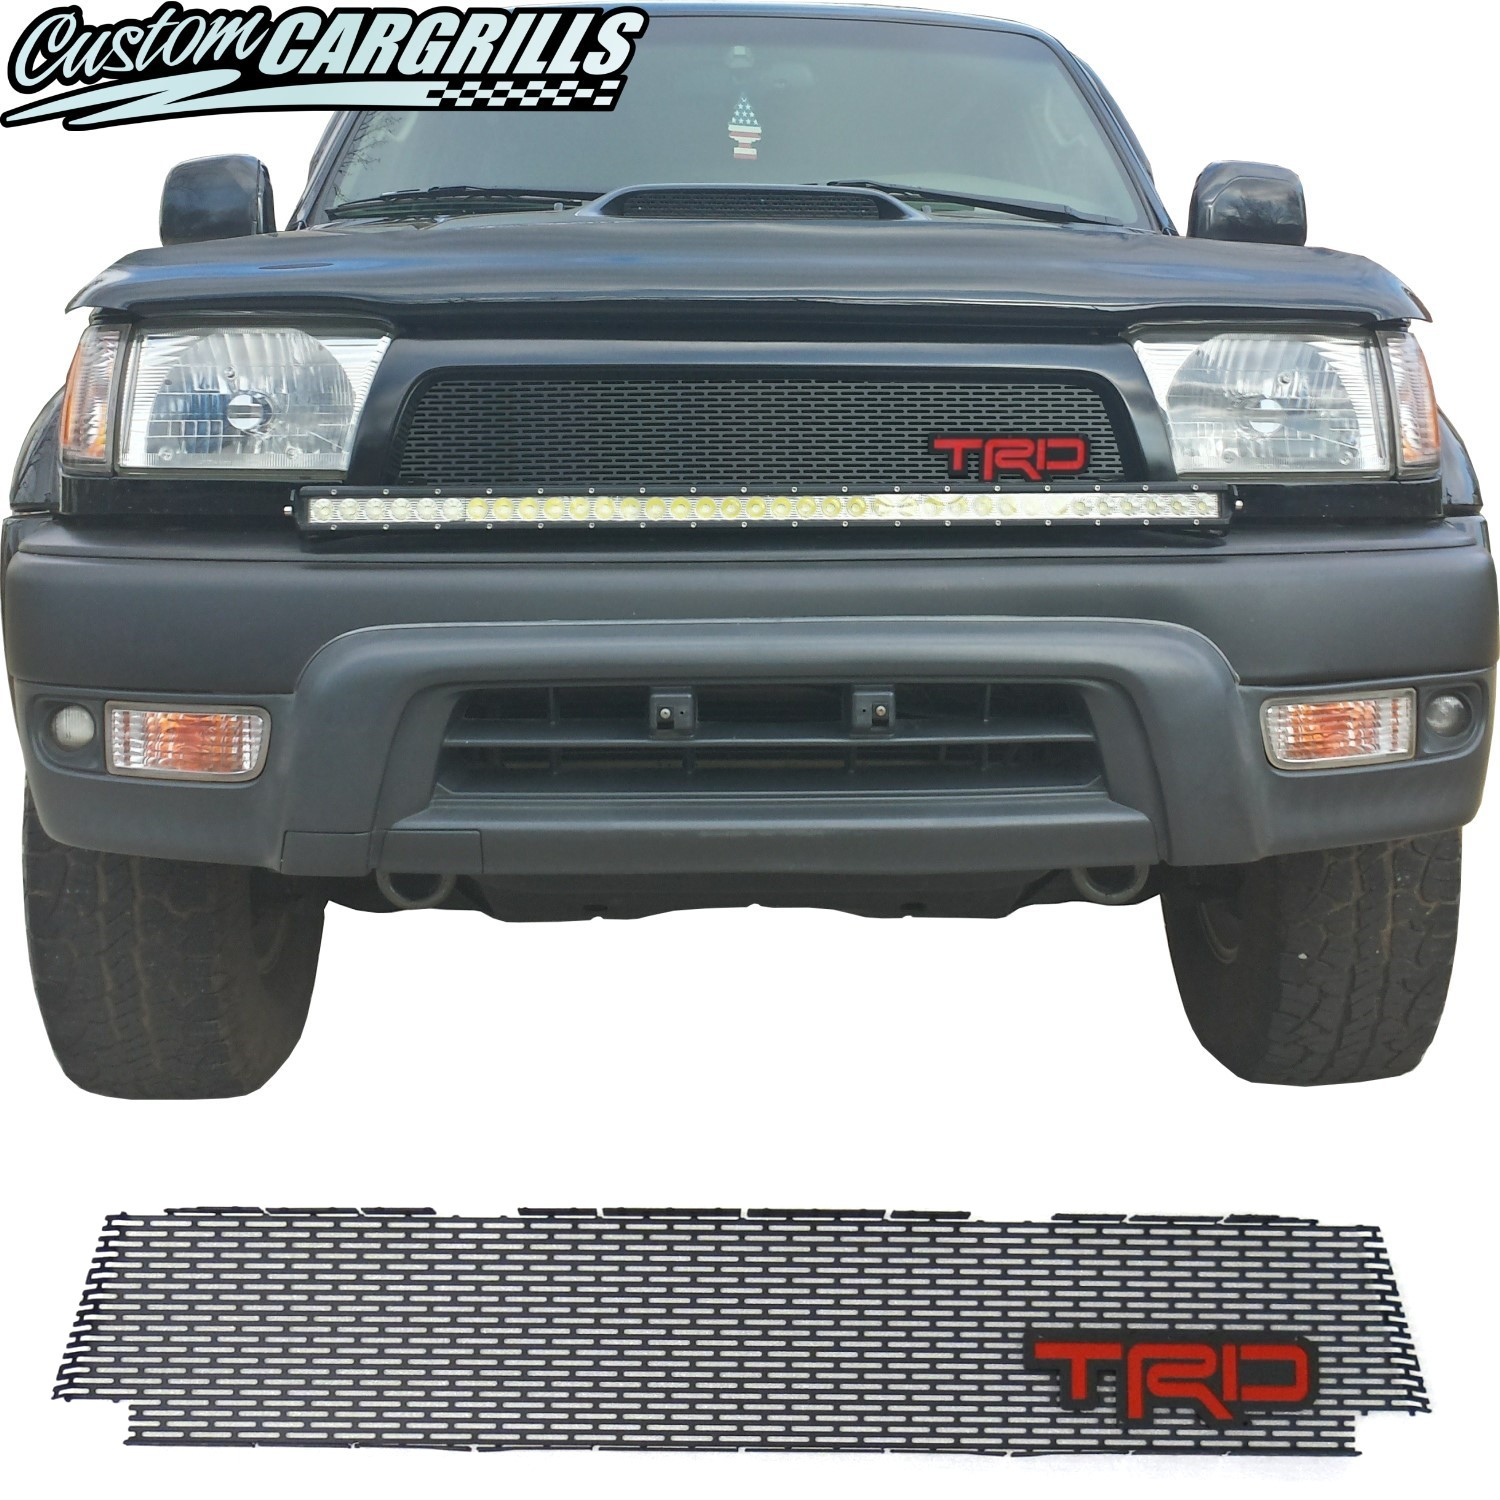 1996-98 (and 99-02*) Toyota 4Runner Grill Mesh With TRD Emblem